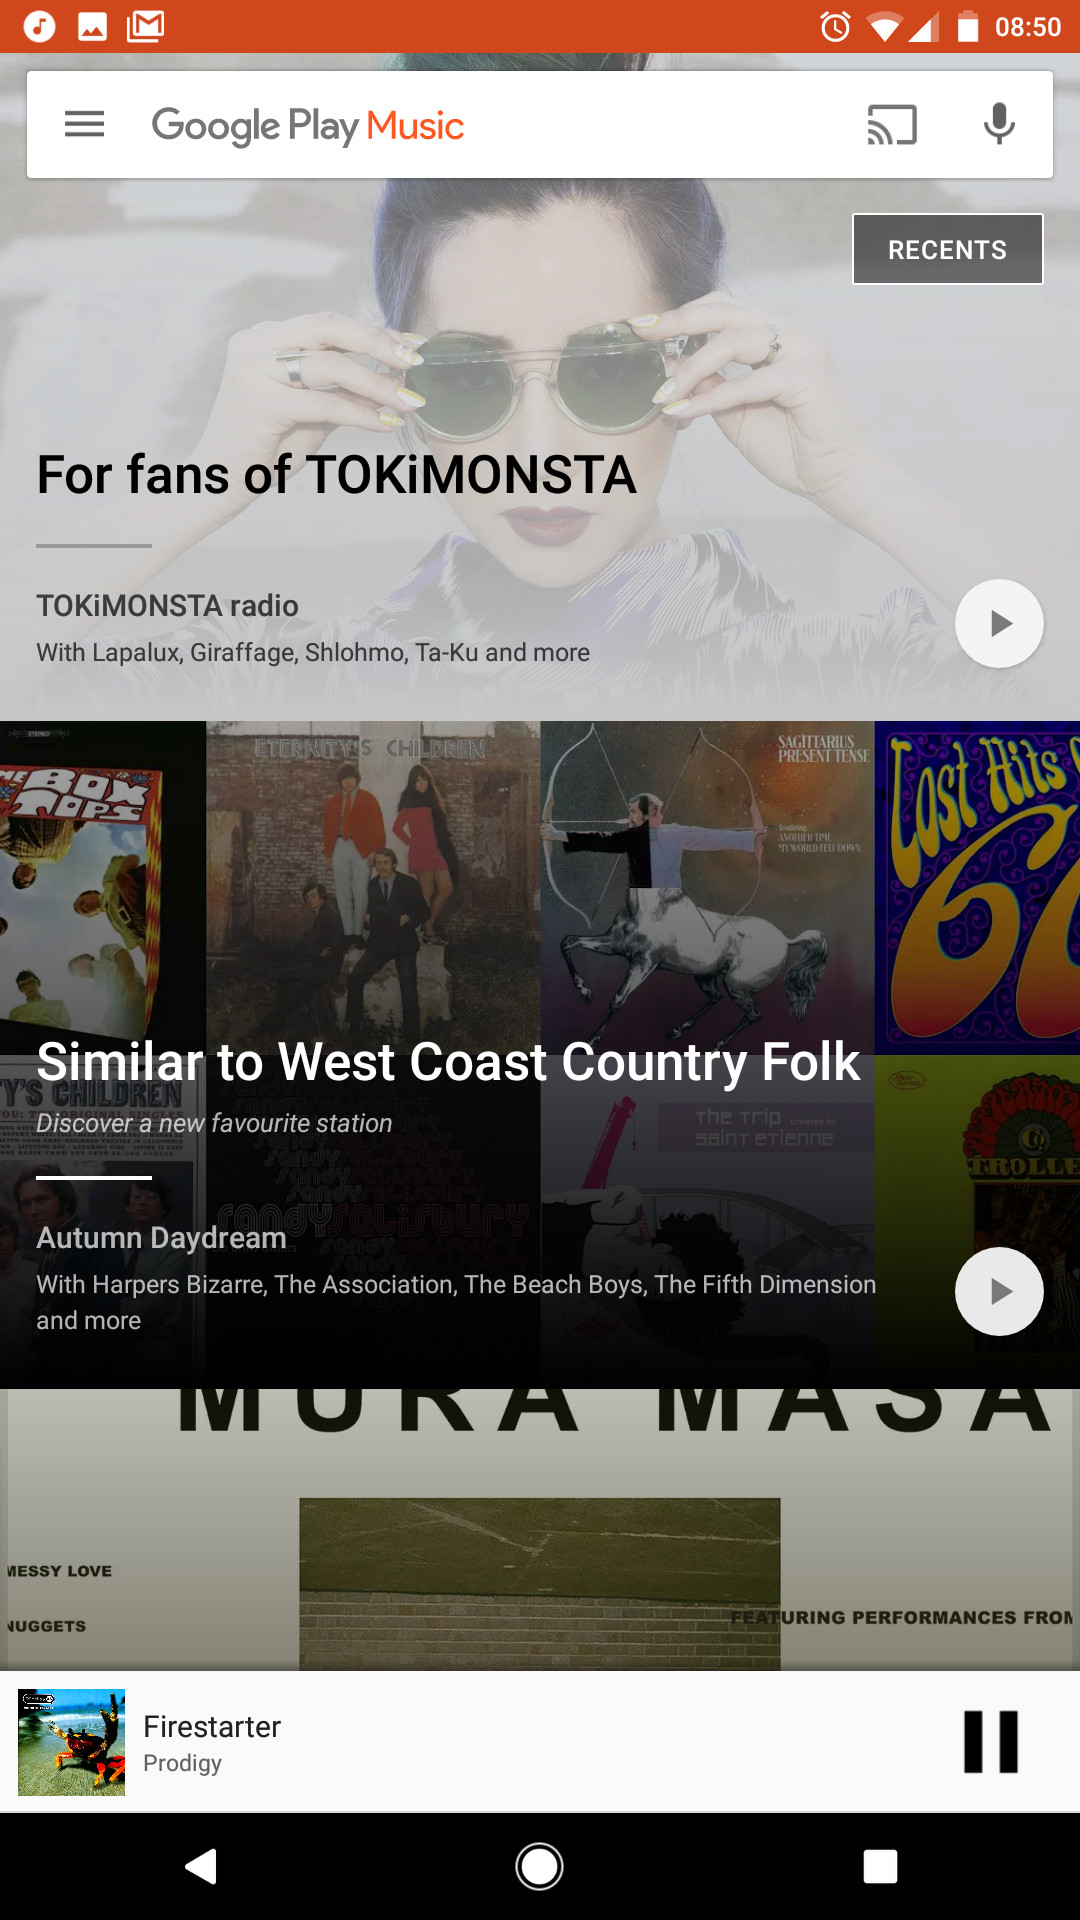 Google Play Music on Android is now playable from search